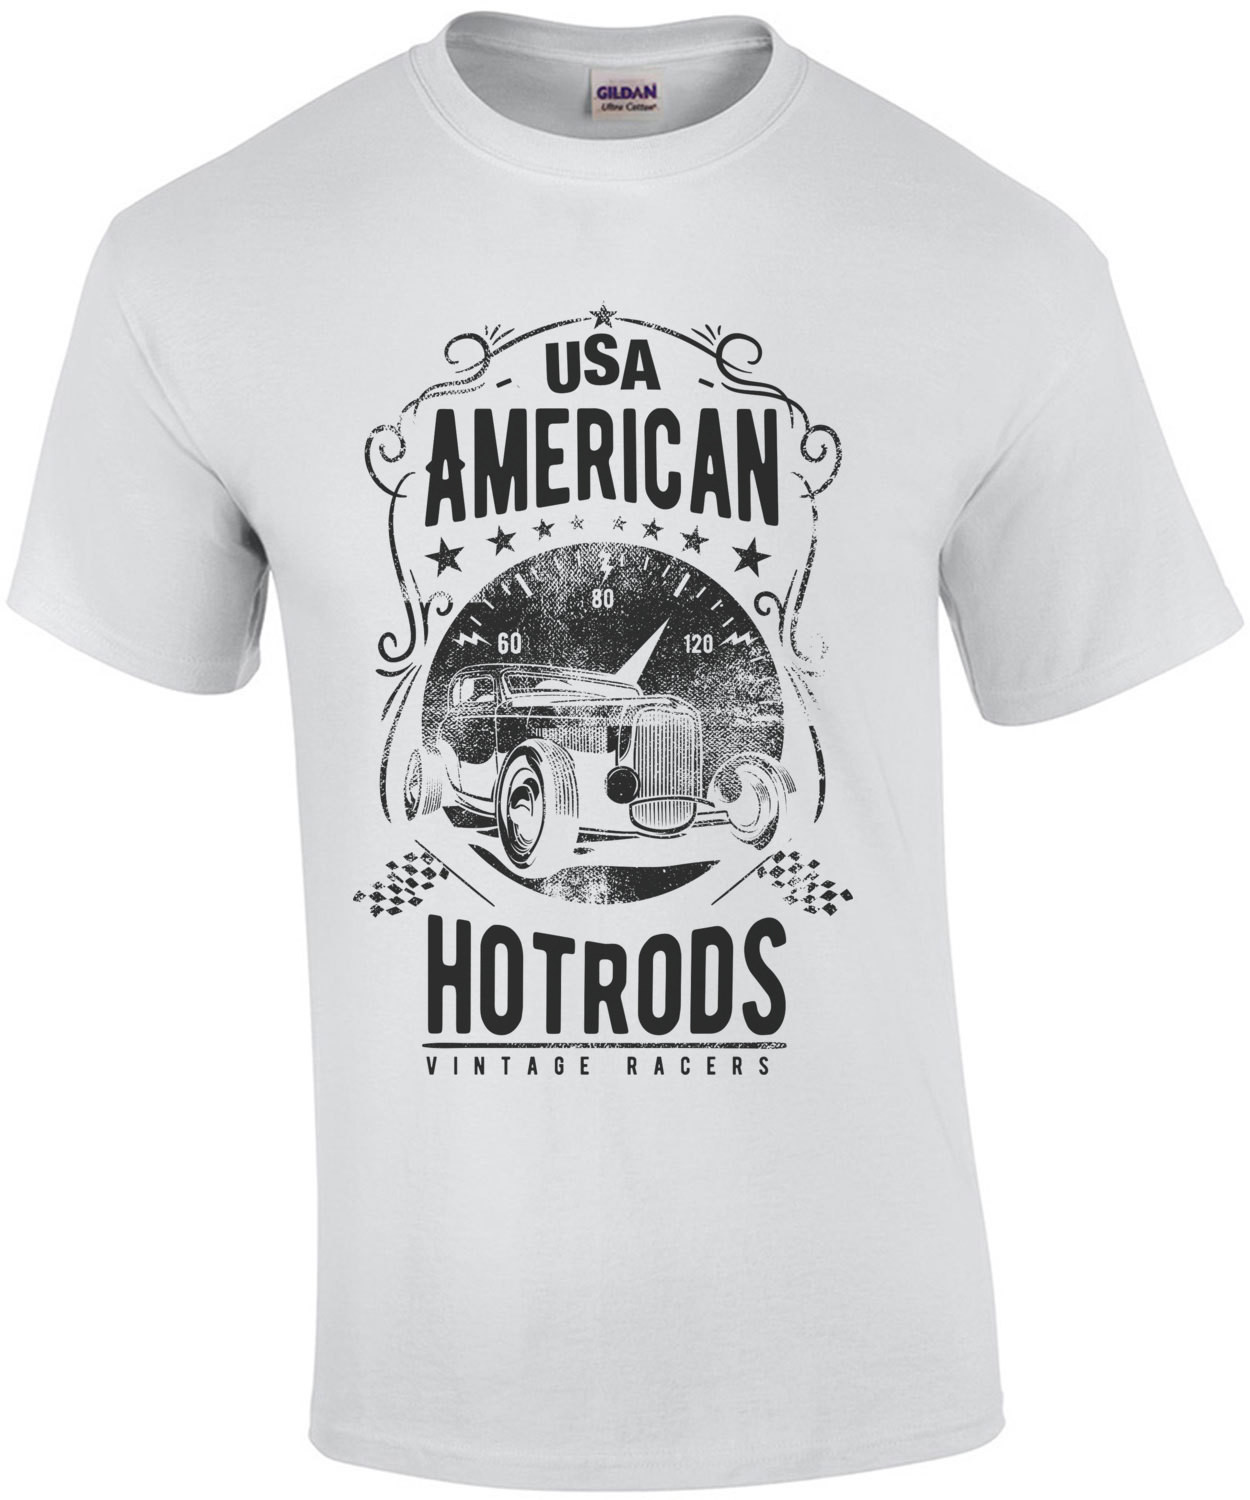 Usa American Hot Rods Vintage Racers T-Shirt